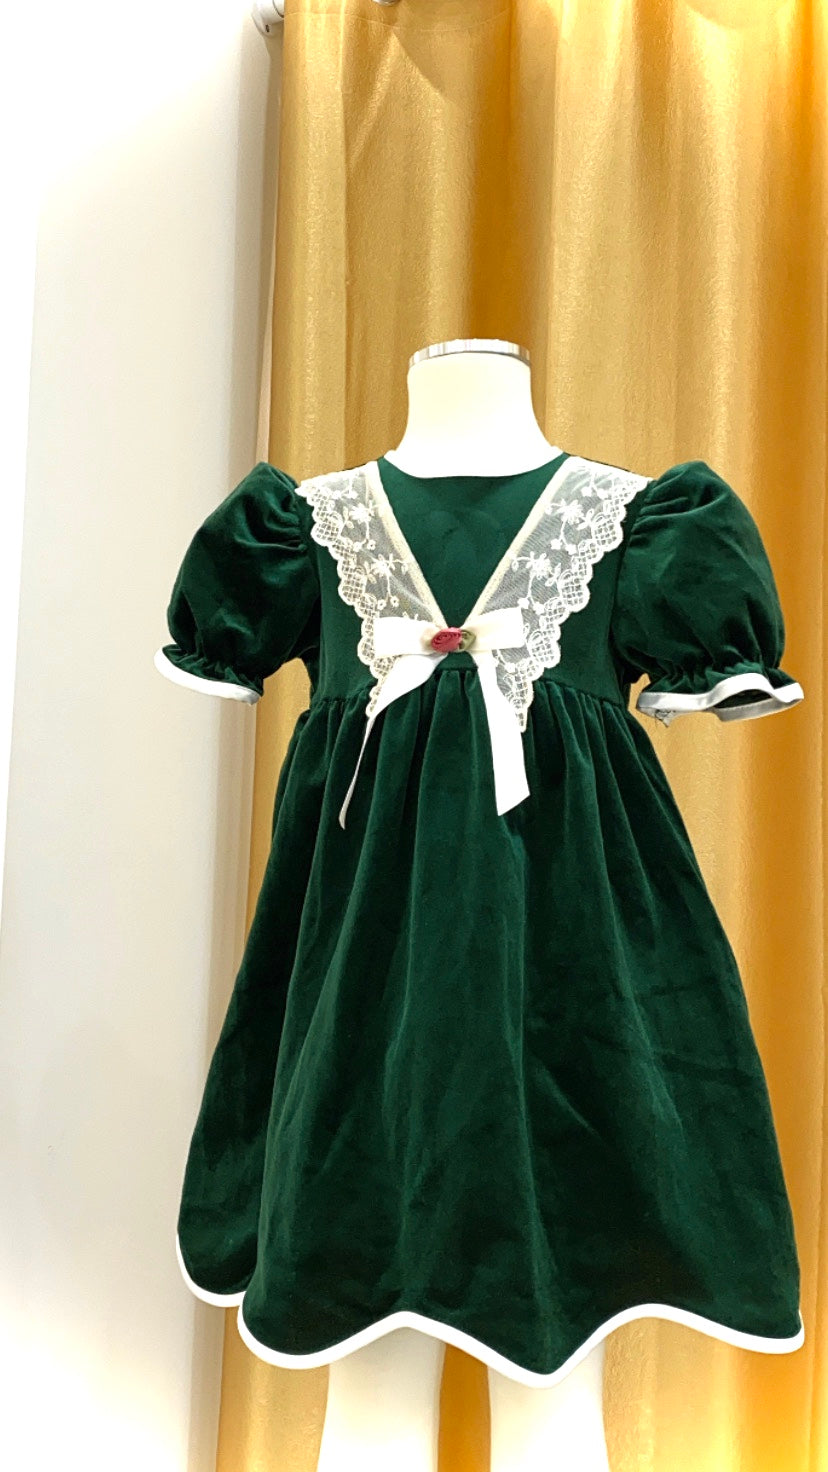 Girls - Vintage - Velvet Dress with Lace Trim and Scalloped Hem - Size 4-5